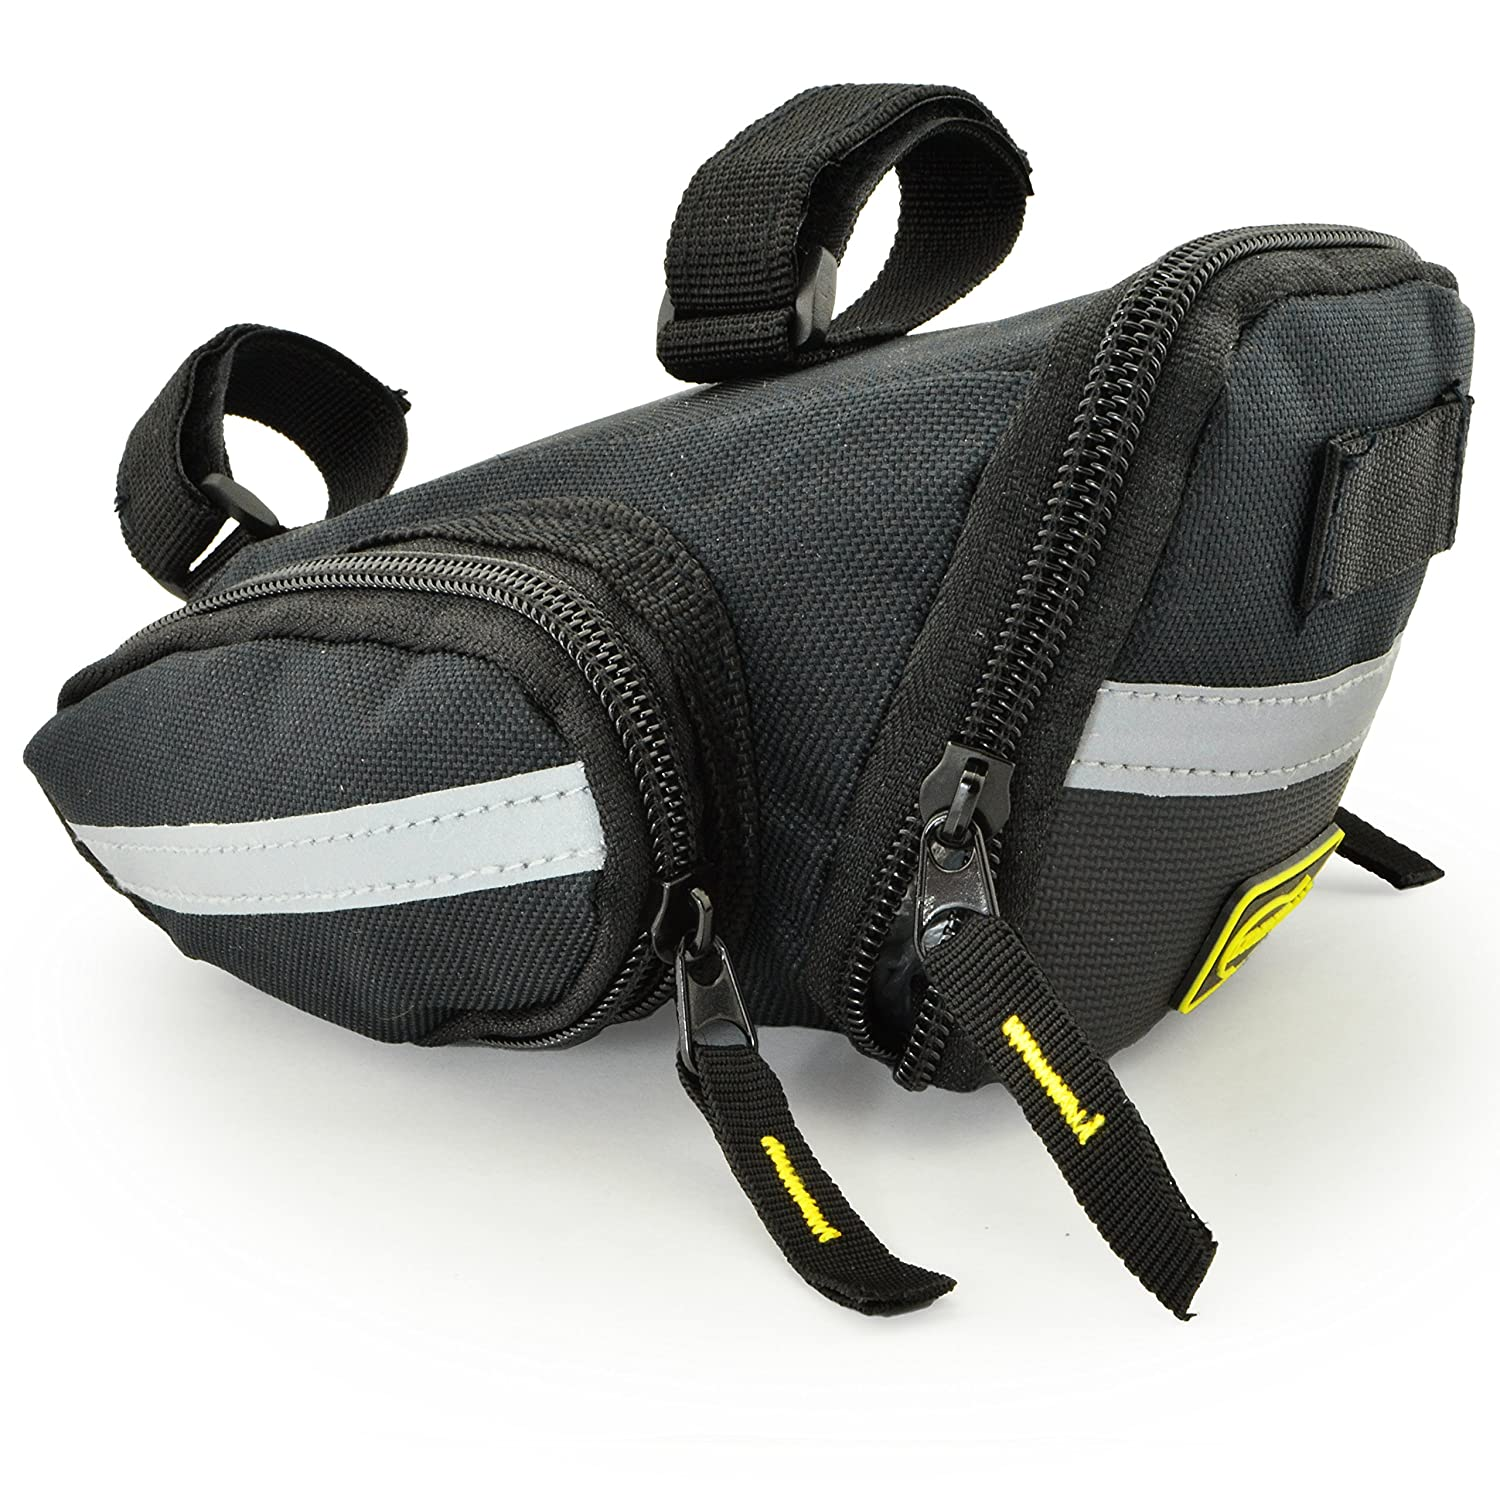 Lumintrail Strap-on Bike Saddle Bag